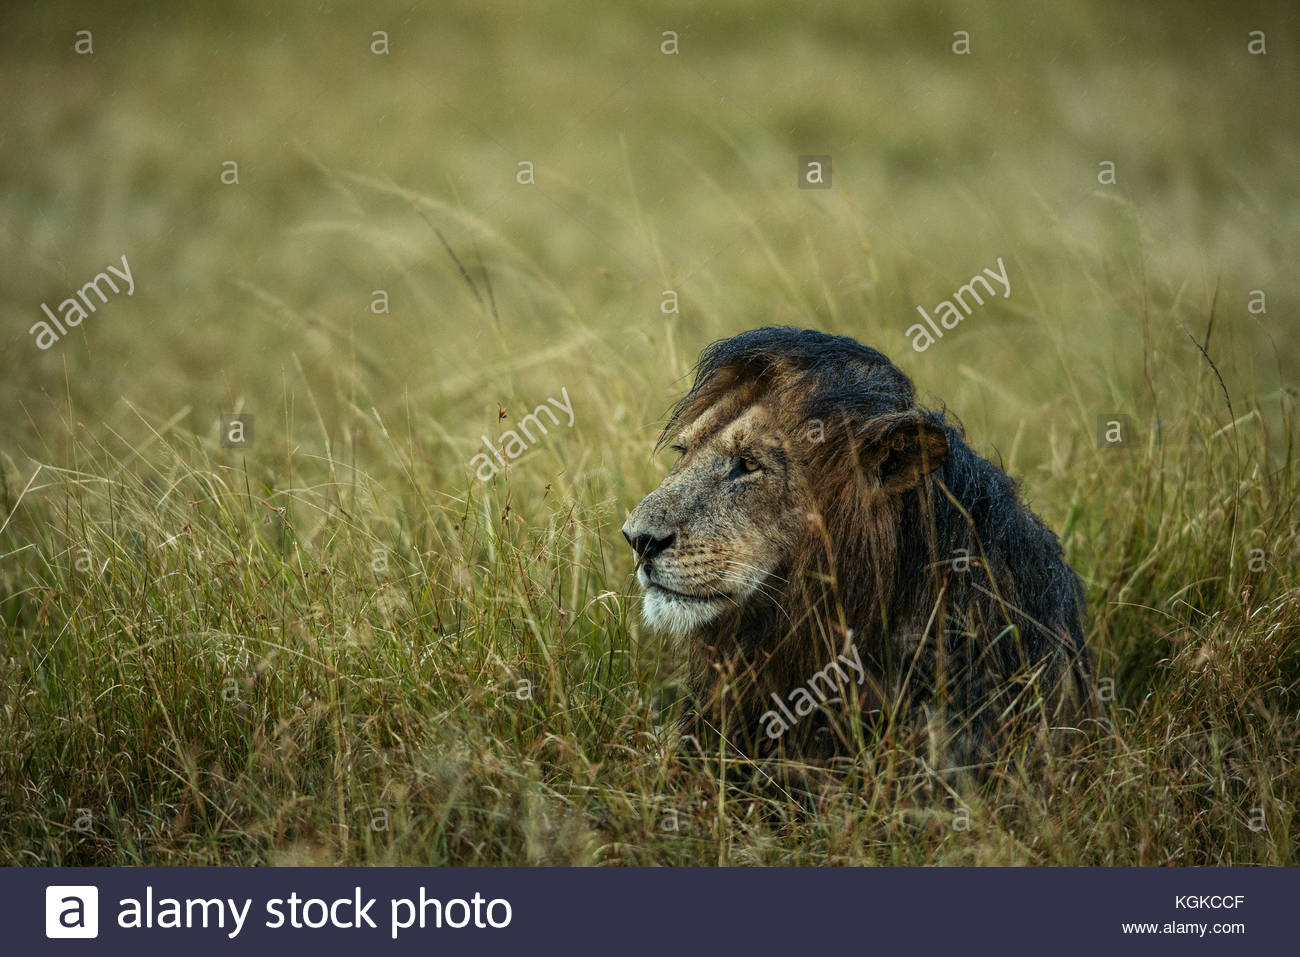 African Lion, Panthera leo, female in rainstorm, in Masai Mara National Reserve. - Stock Image